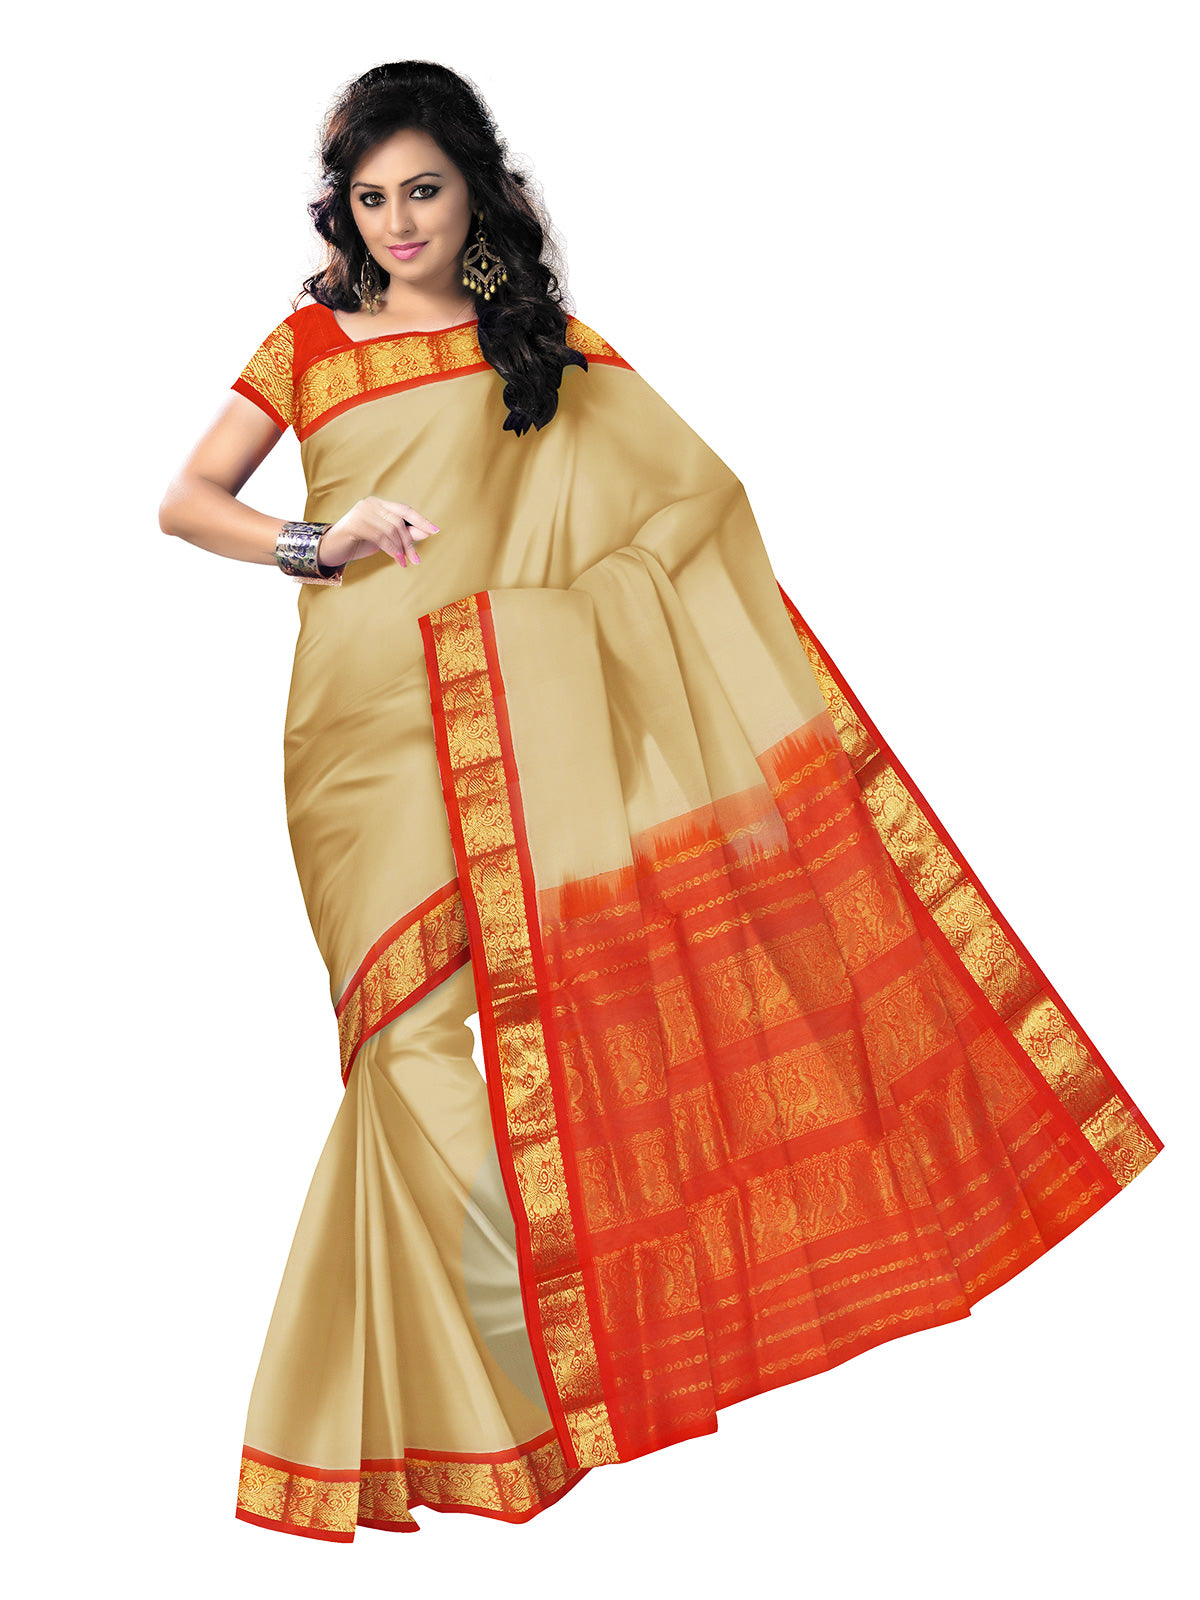 Silk Cotton Saree : Sandal and Orange with Annam Zari border Korvai